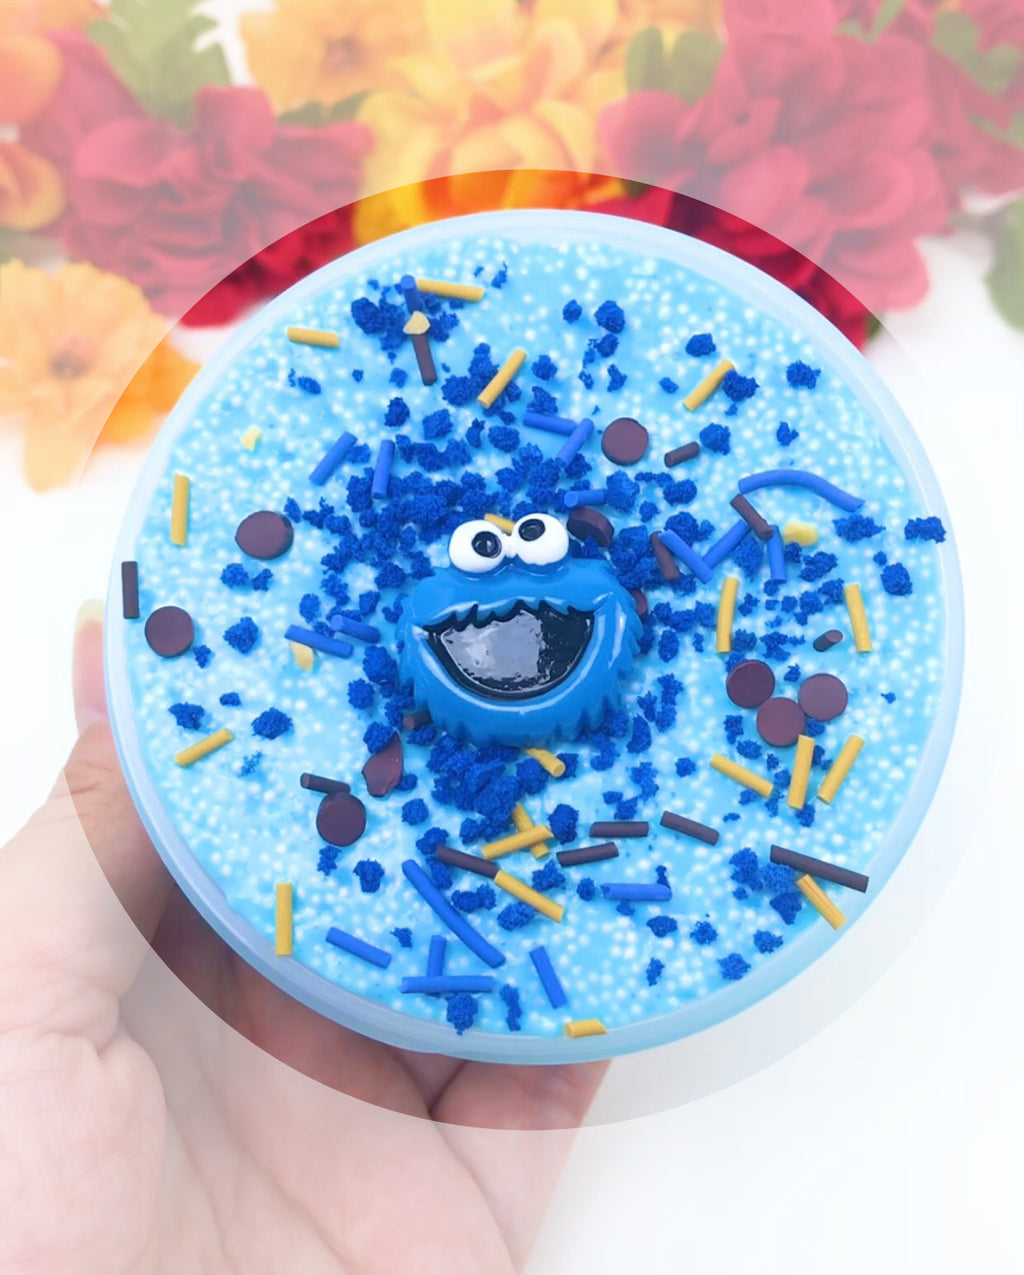 Cookie Monster's Crumbs